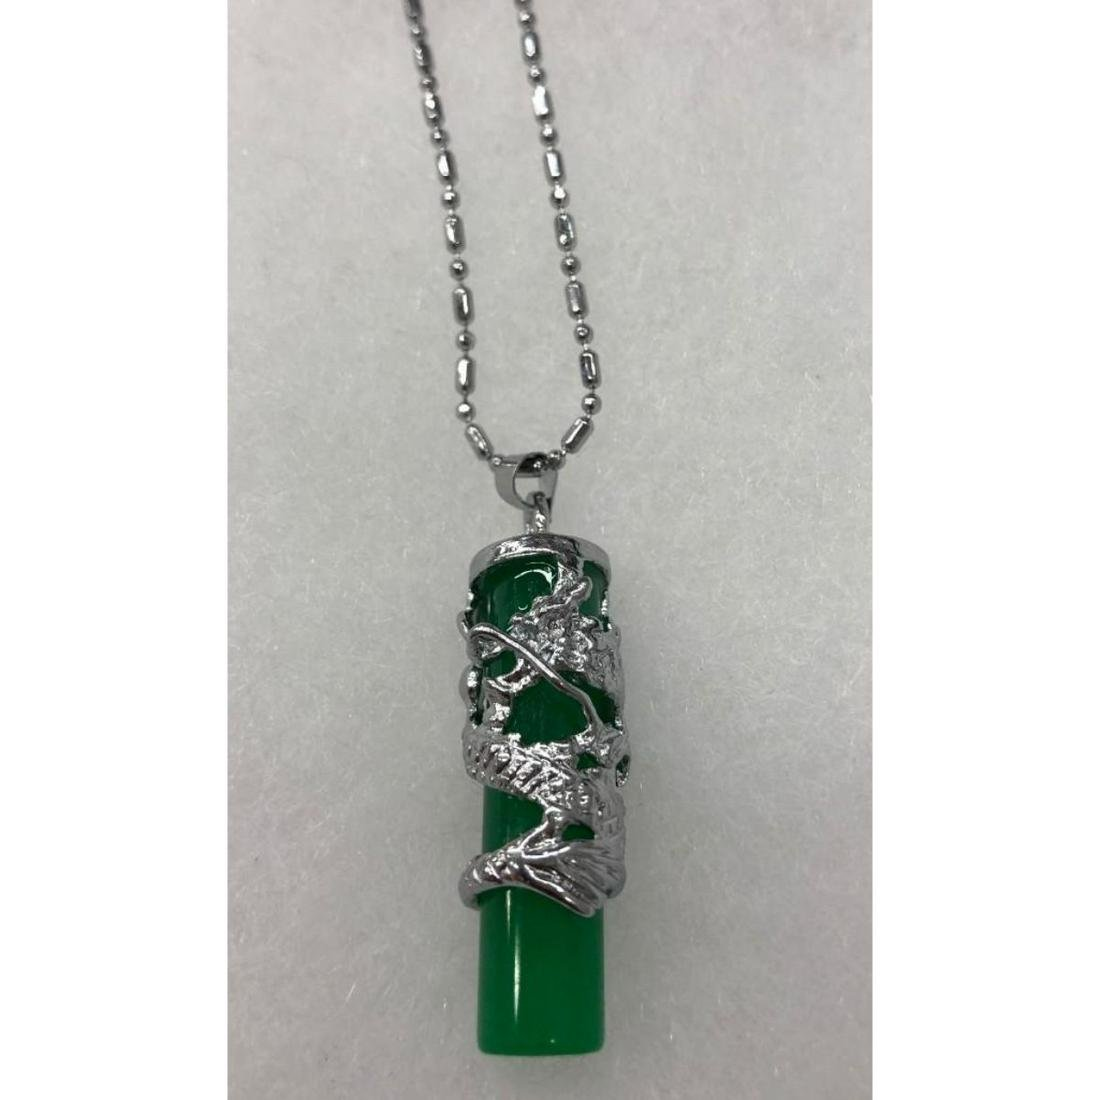 Stunning Asian Green Jade Dragon Pendant Necklace